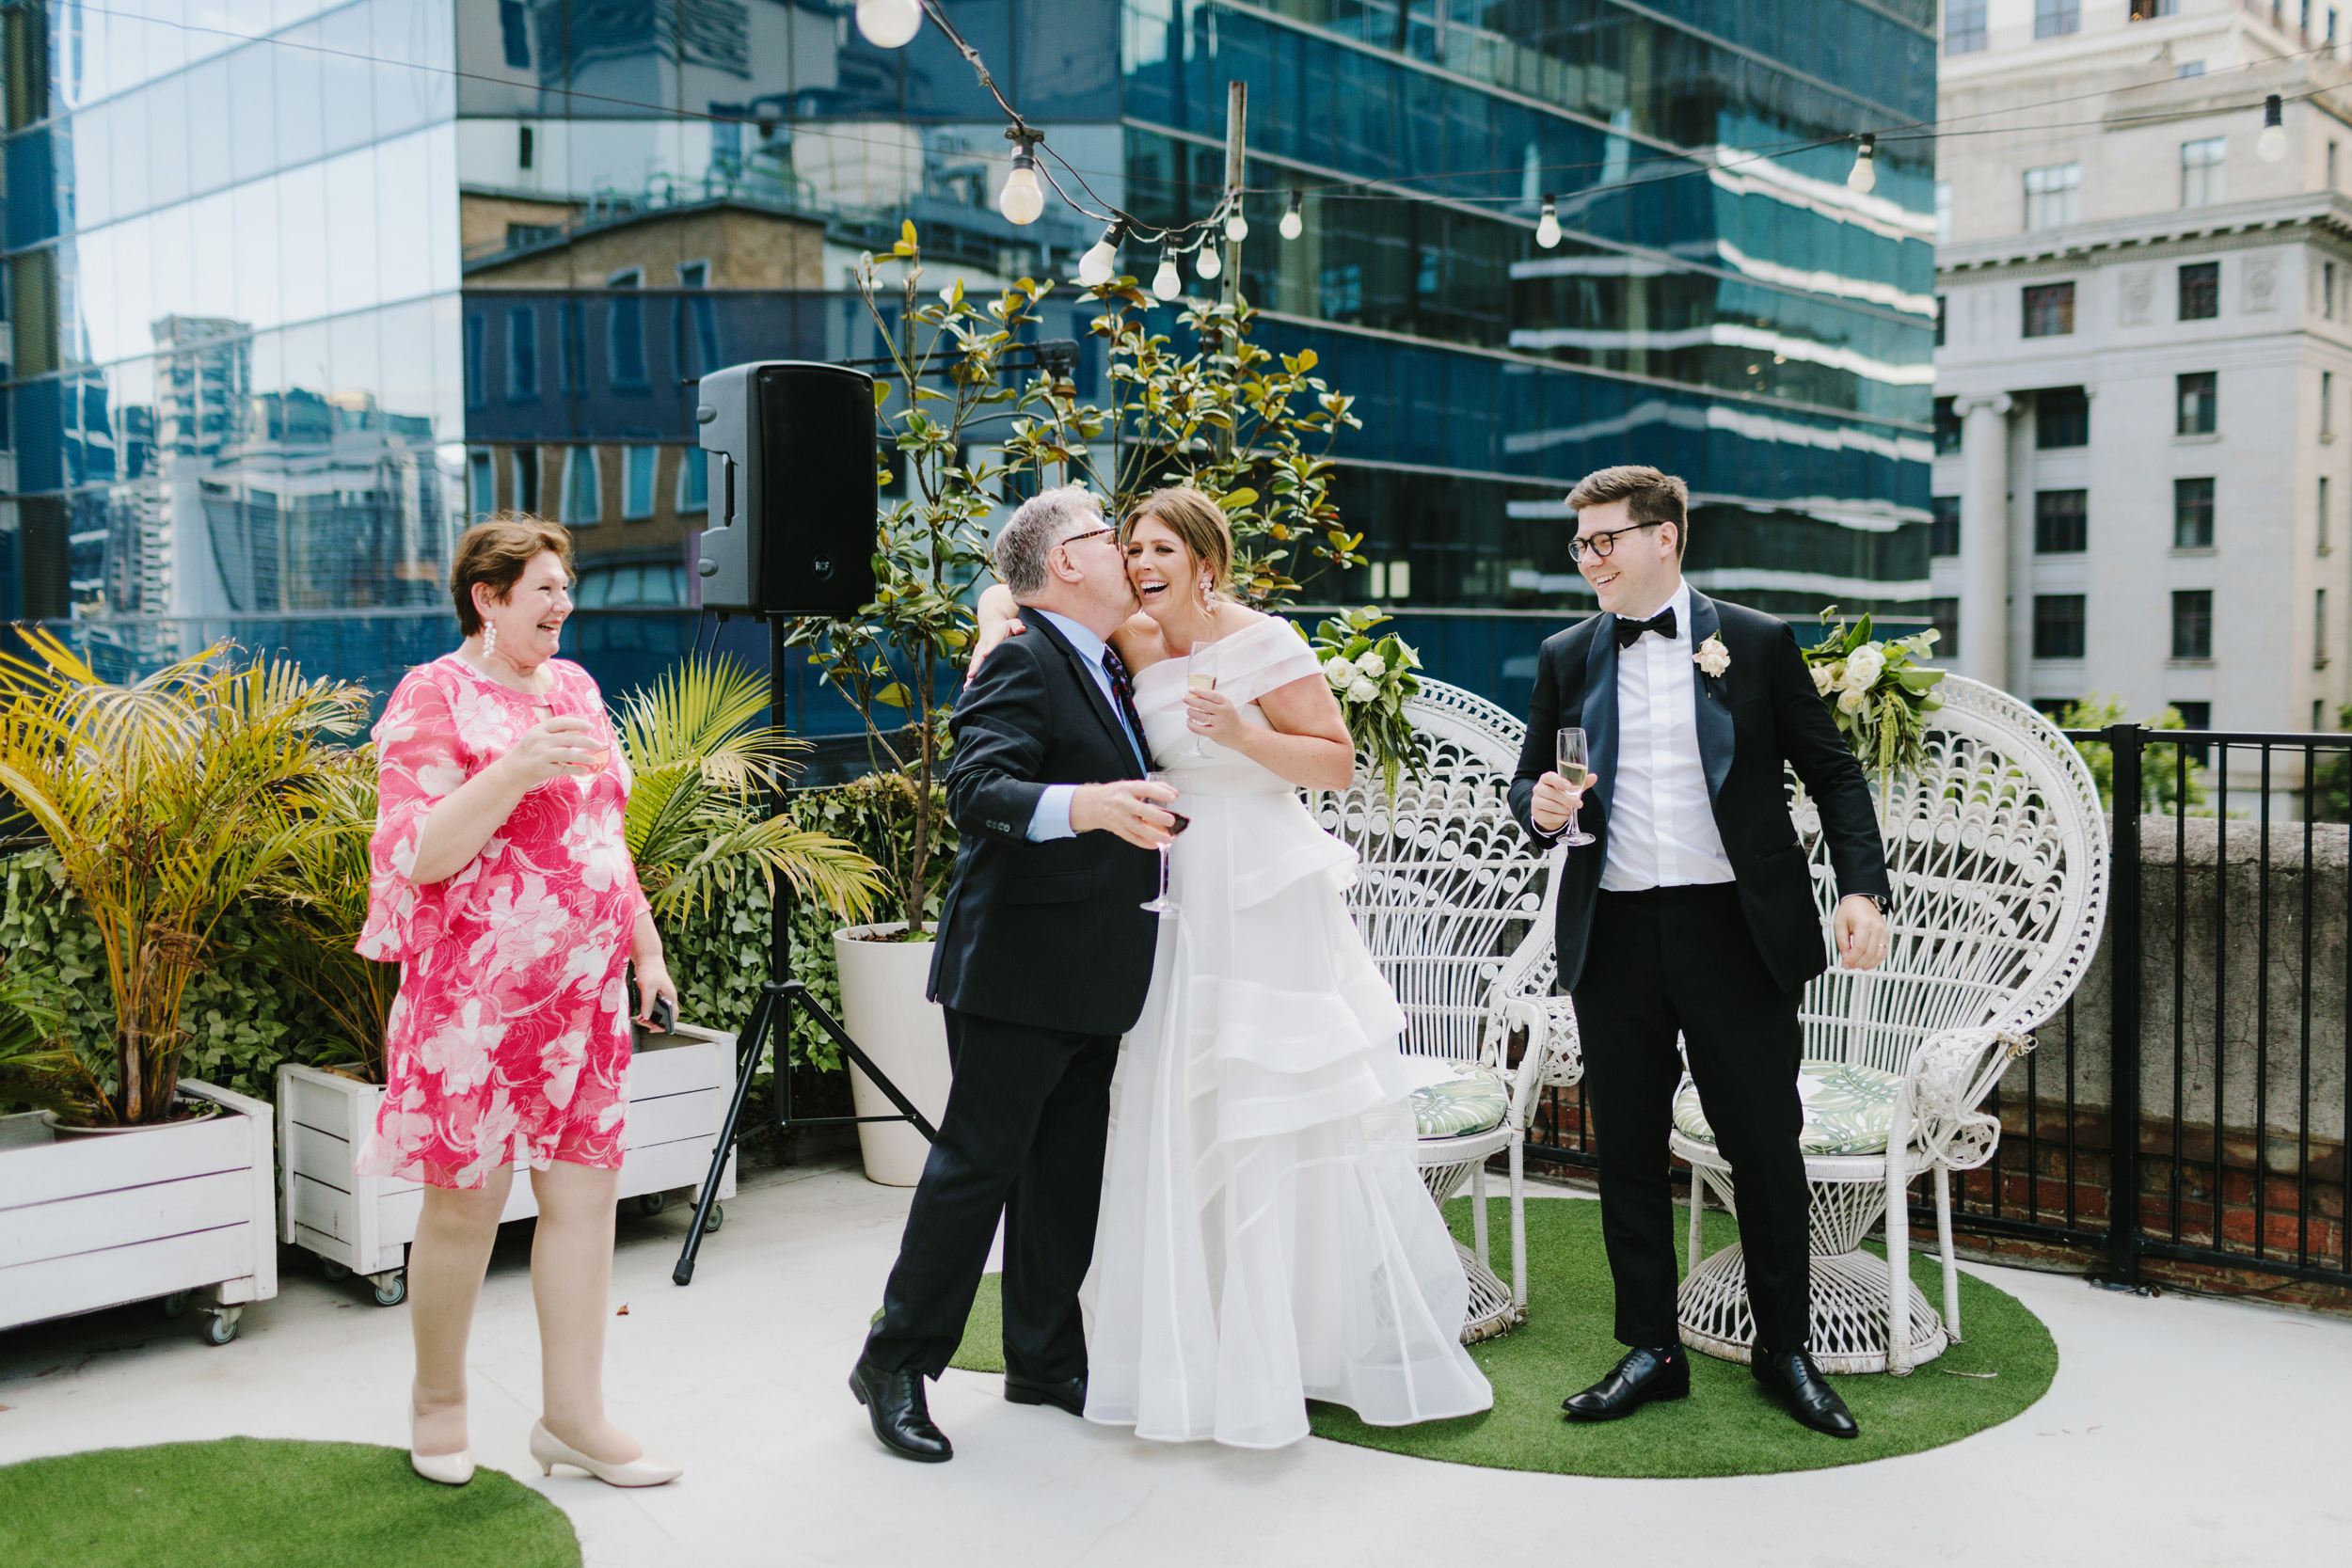 Melbourne_City_Rooftop_Wedding_Tyson_Brigette108.JPG